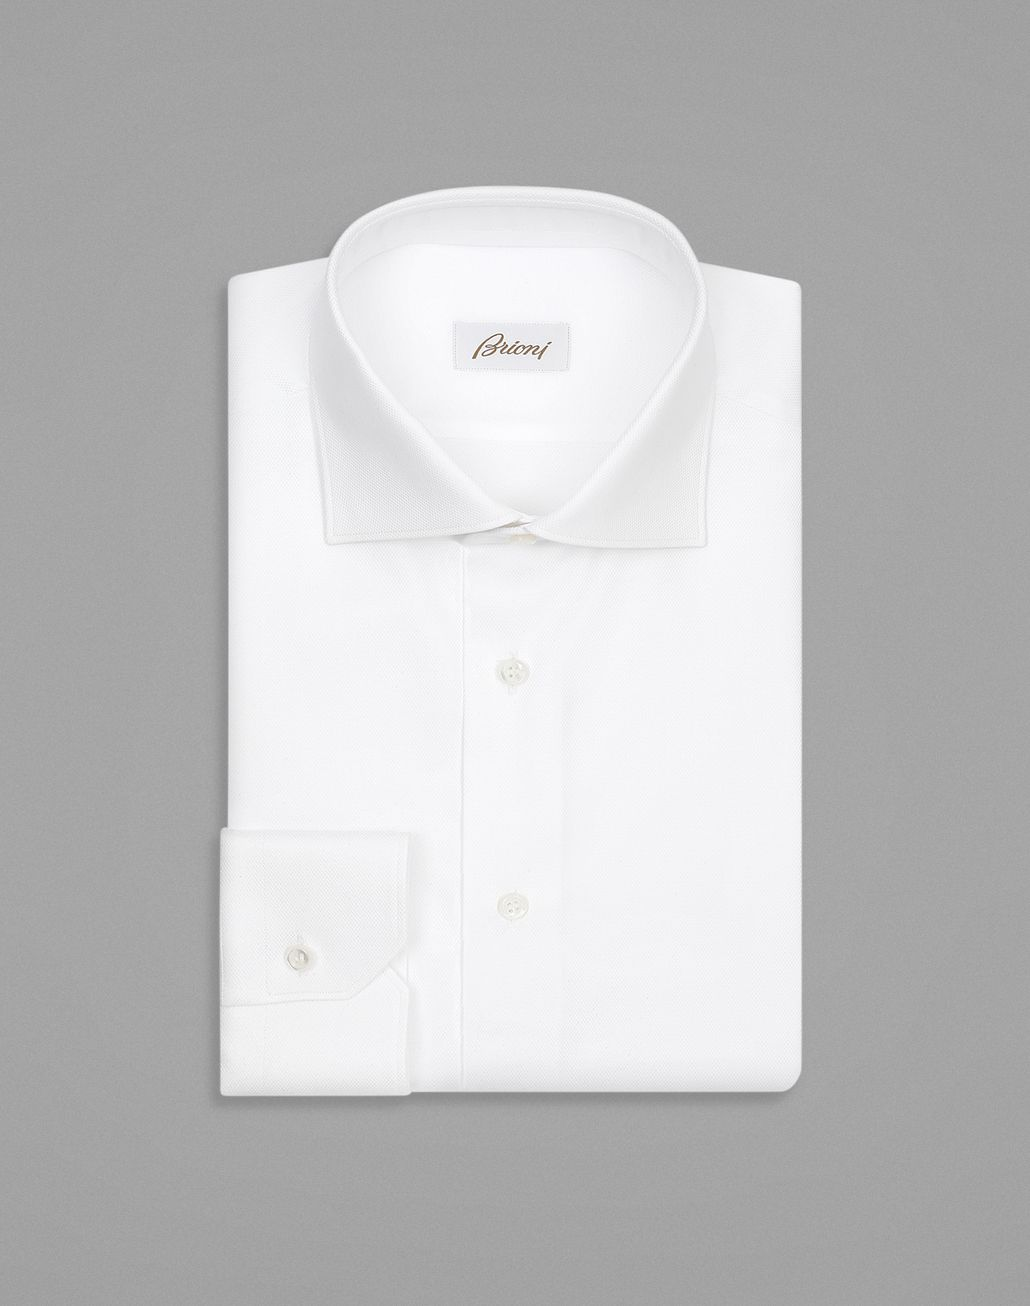 BRIONI White Tone on Tone Rhombus Design Formal Shirt Formal shirt Man f